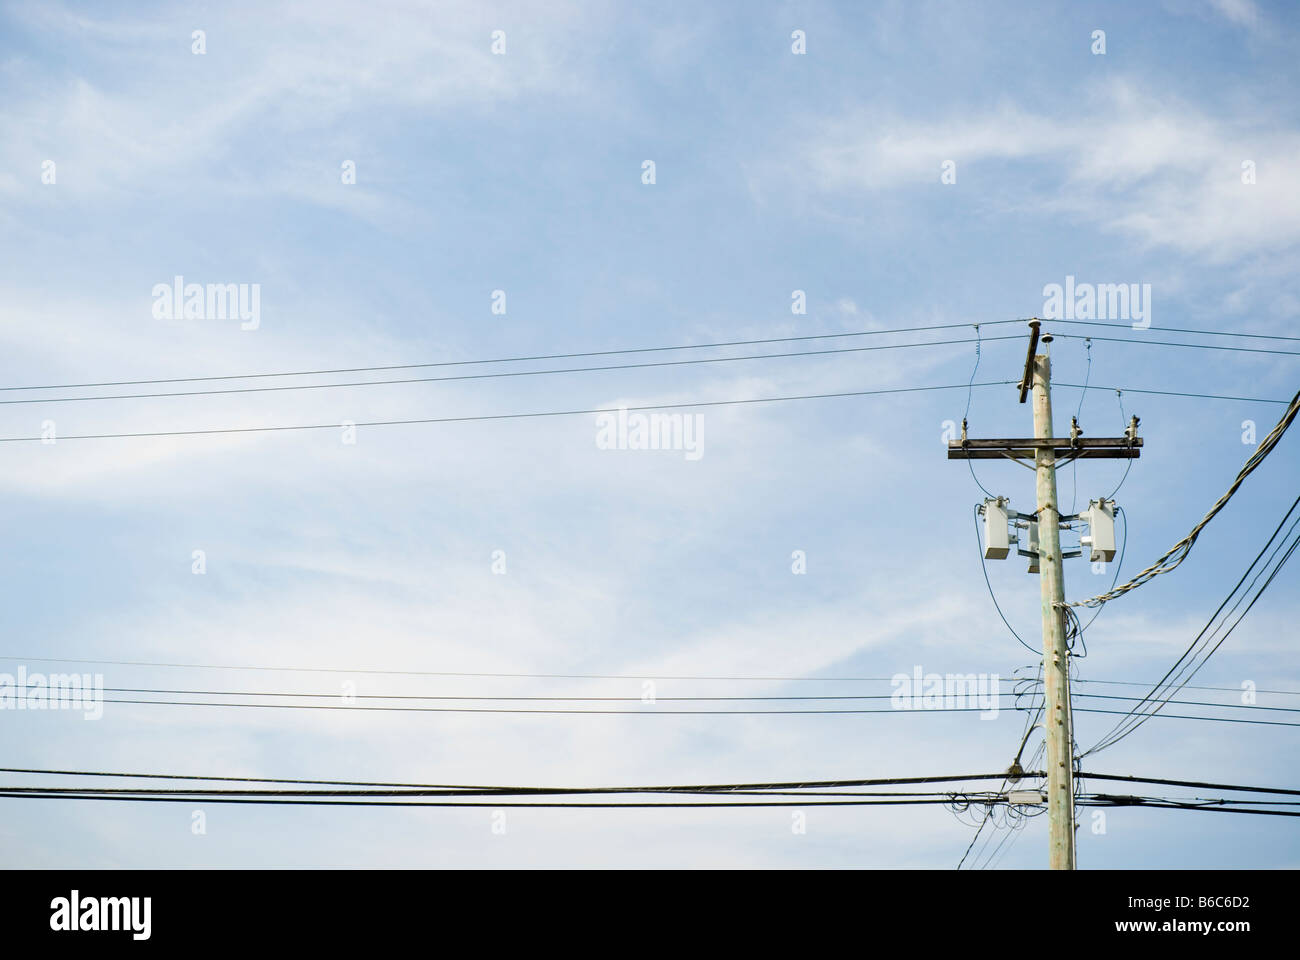 Suburban utility pole showing a complex of wiring and cables - Stock Image